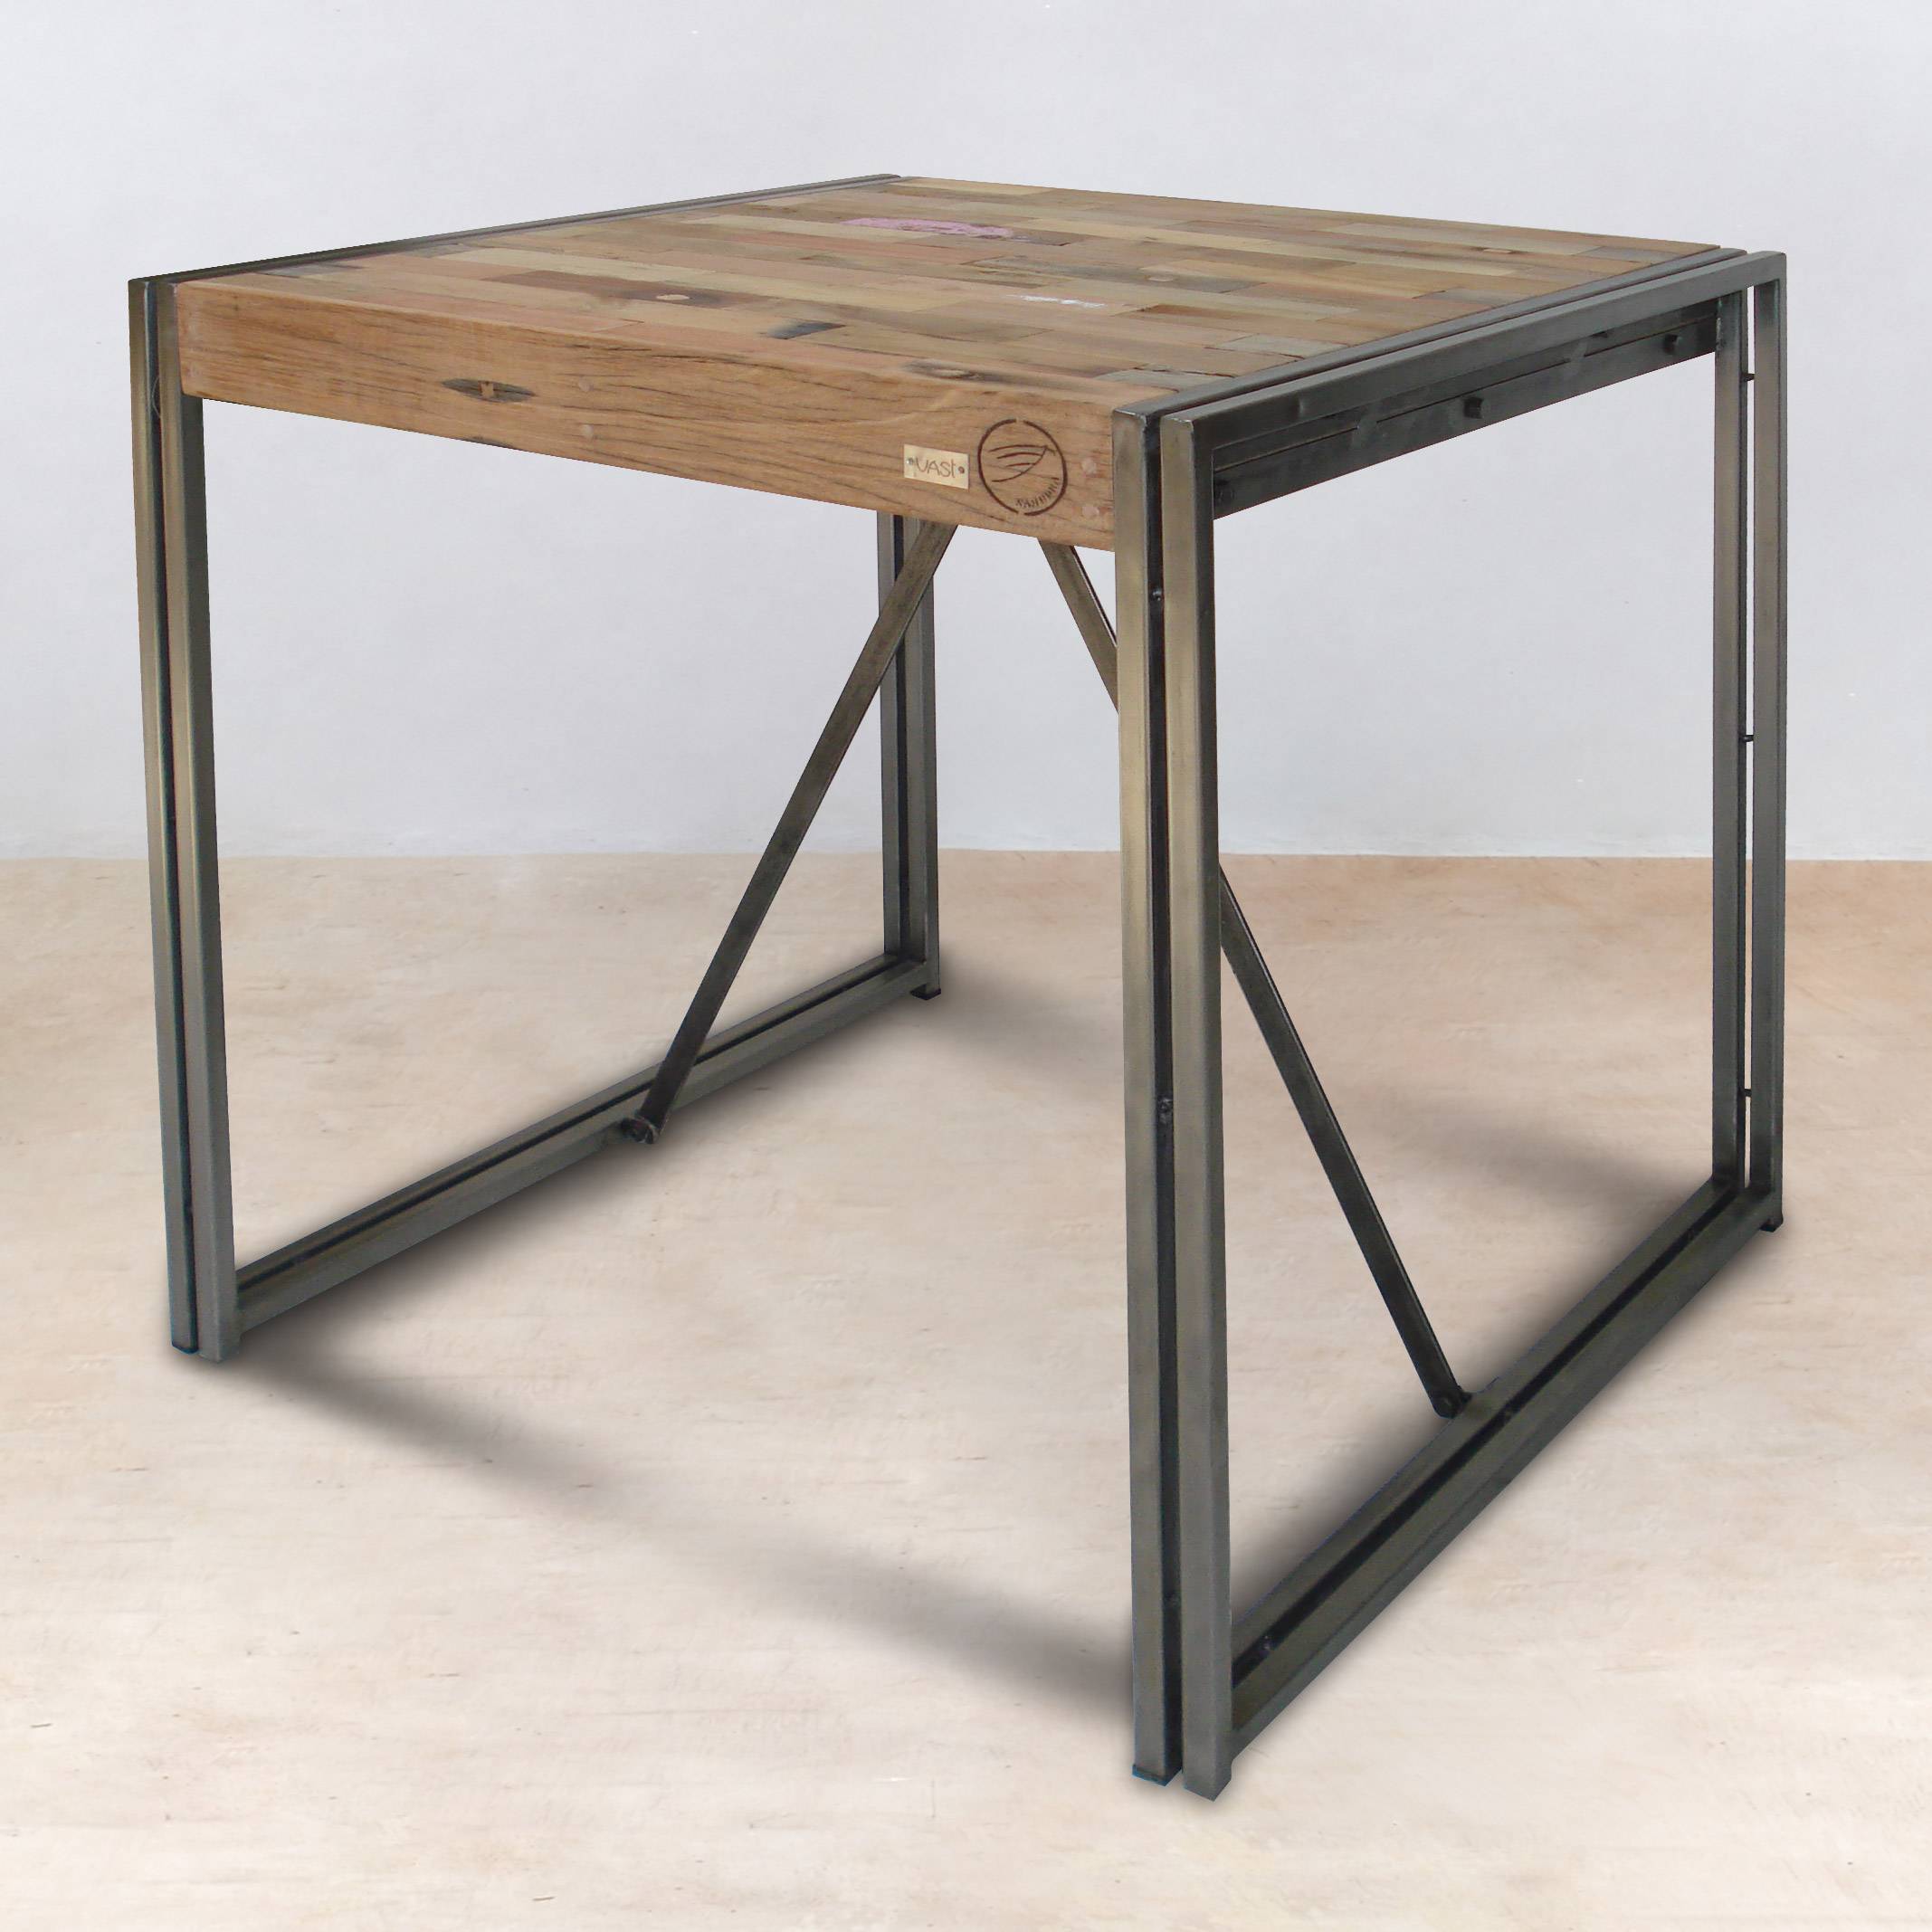 Bureau 150x80 Table Mange Debout 100cm En Bois Recyclés Industryal